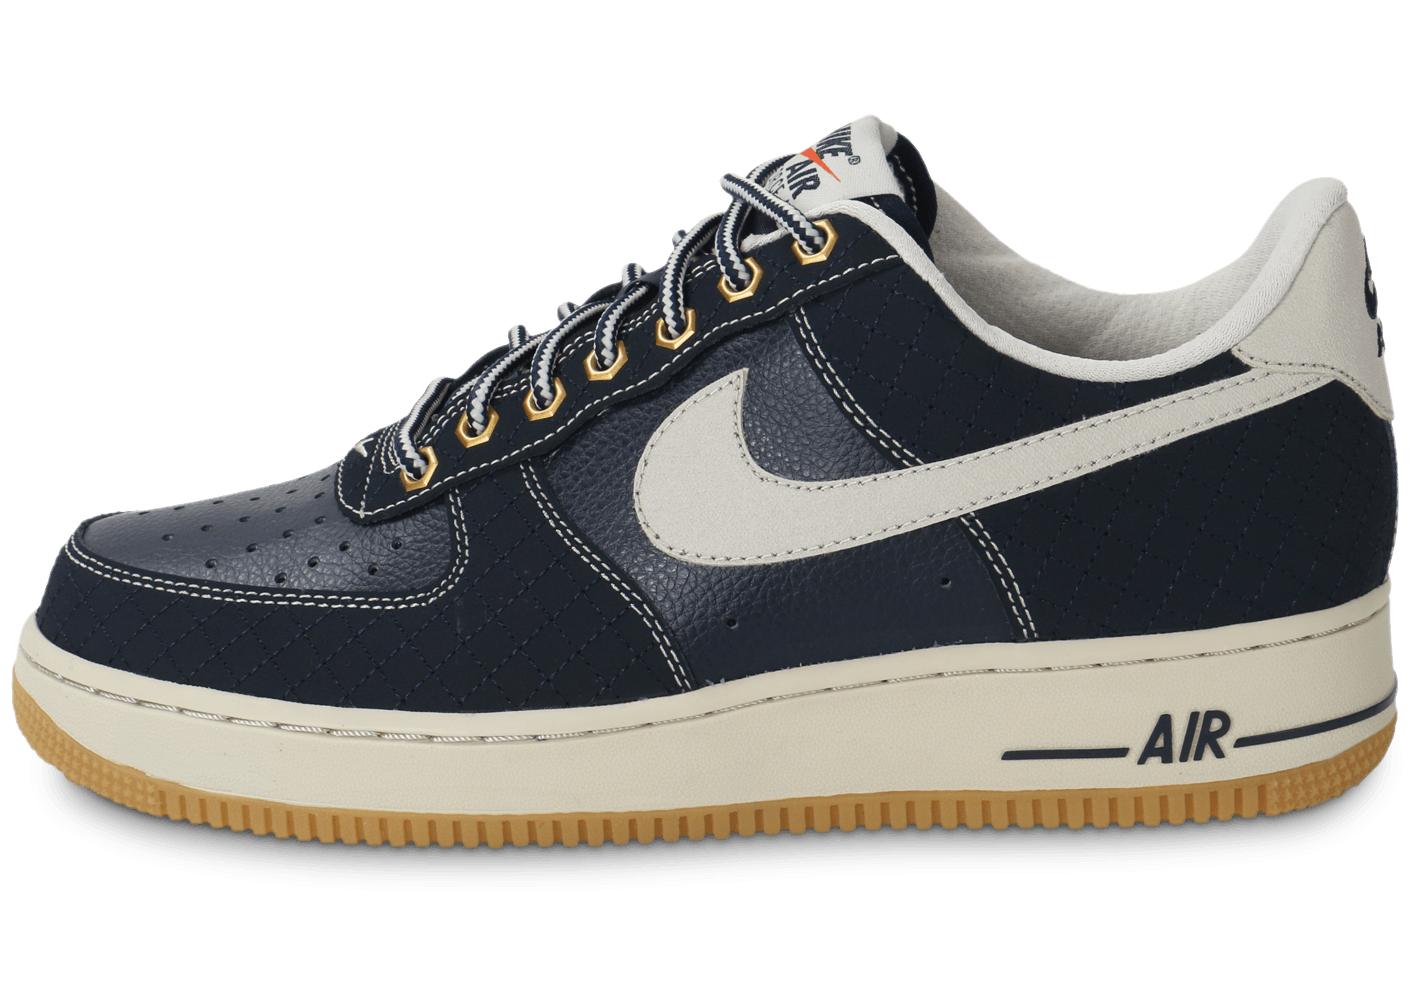 moins cher 7e9a8 8bfd4 Nike Air Force 1 Low bleu marine